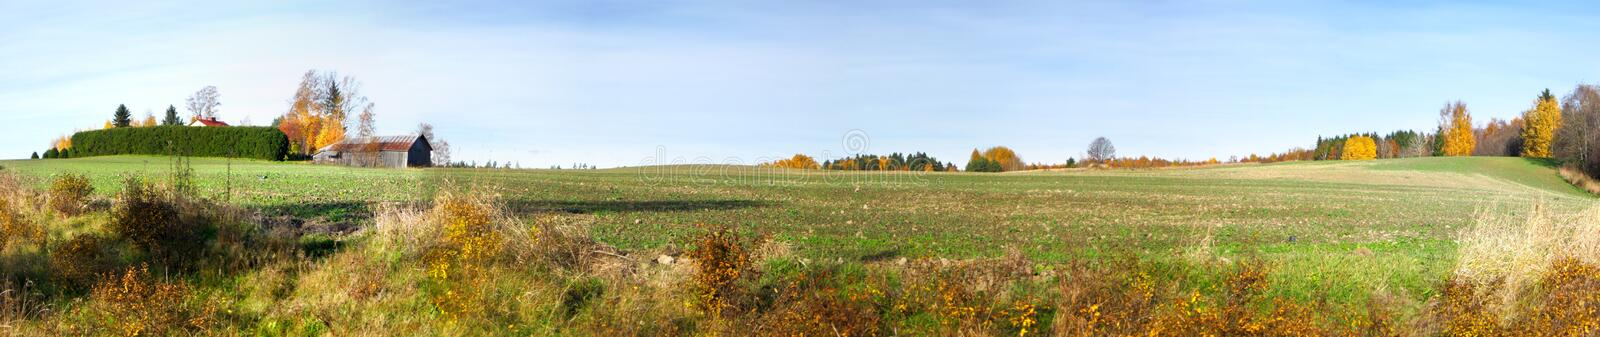 Countryside panorama stock photography